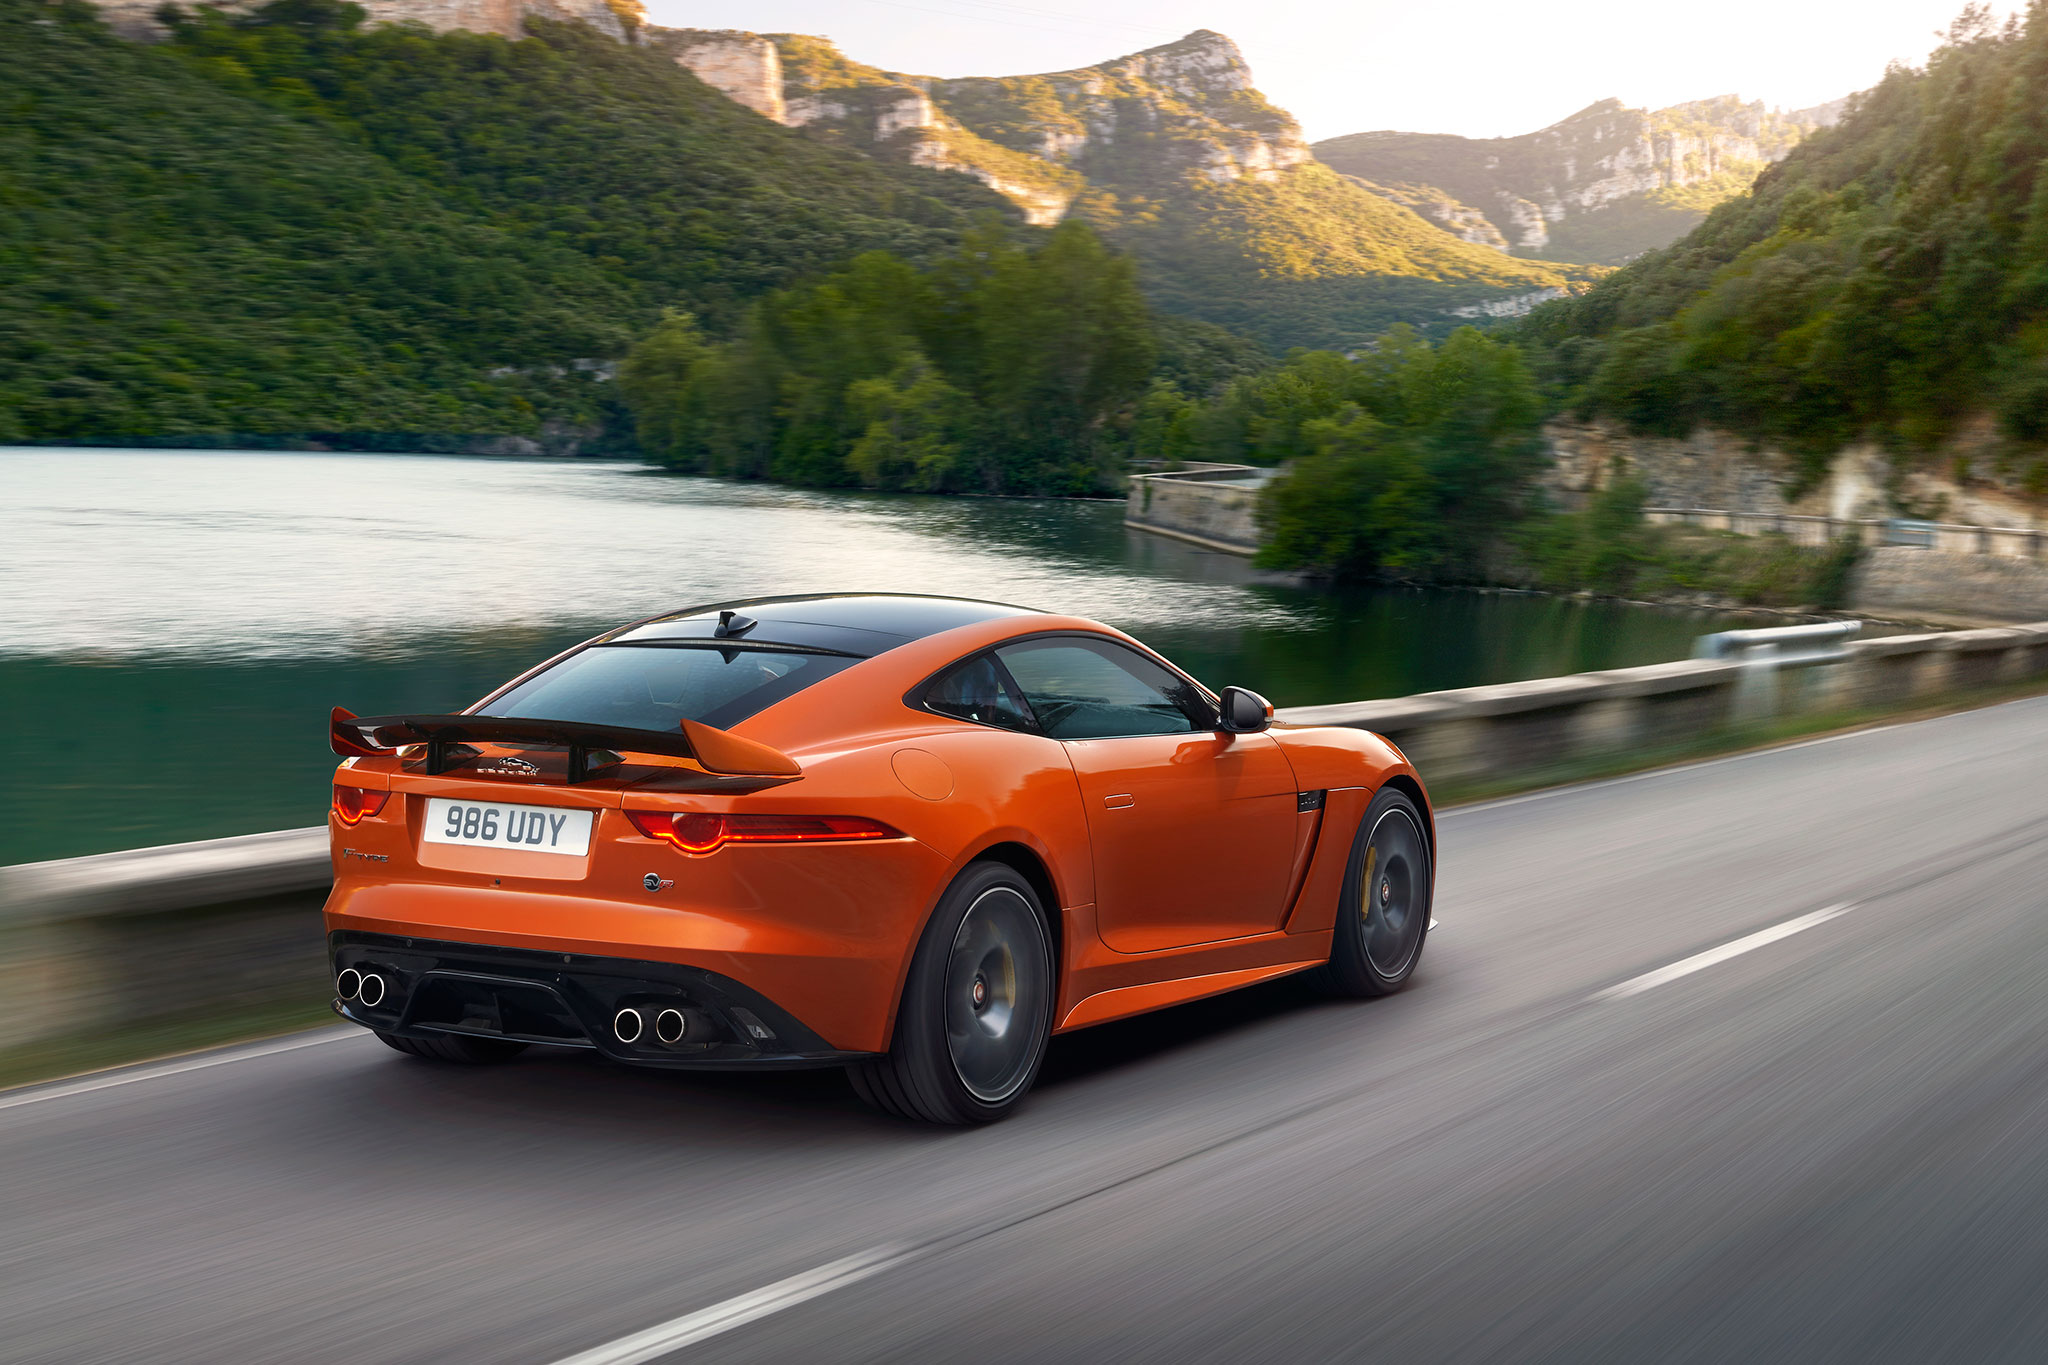 2017-jaguar-f-type-svr-rear-three-quarter-in-motion-01